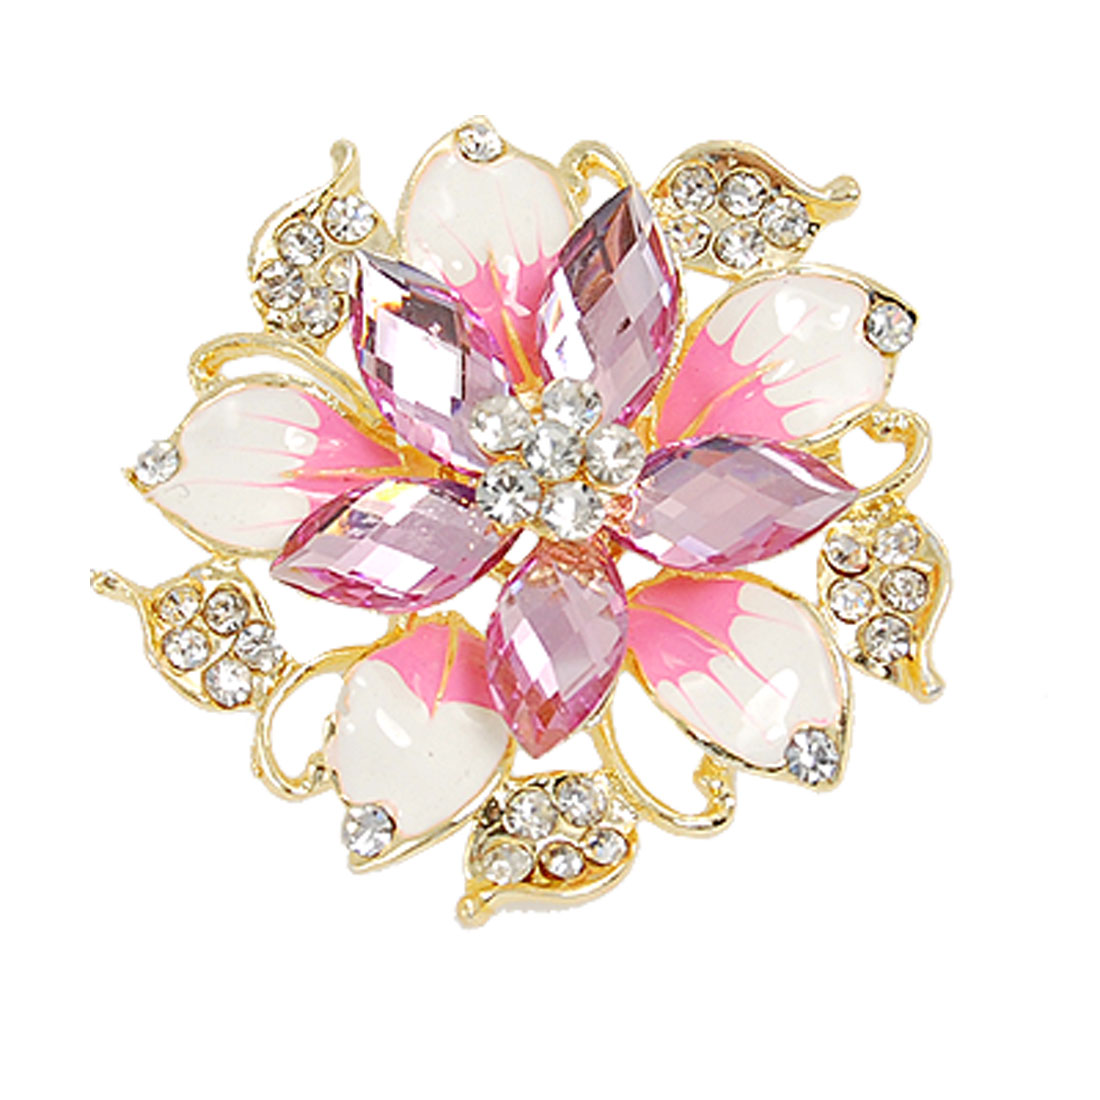 Rhinestone Inlaid Safety Pin Brooch Ultra Pink for Ladies